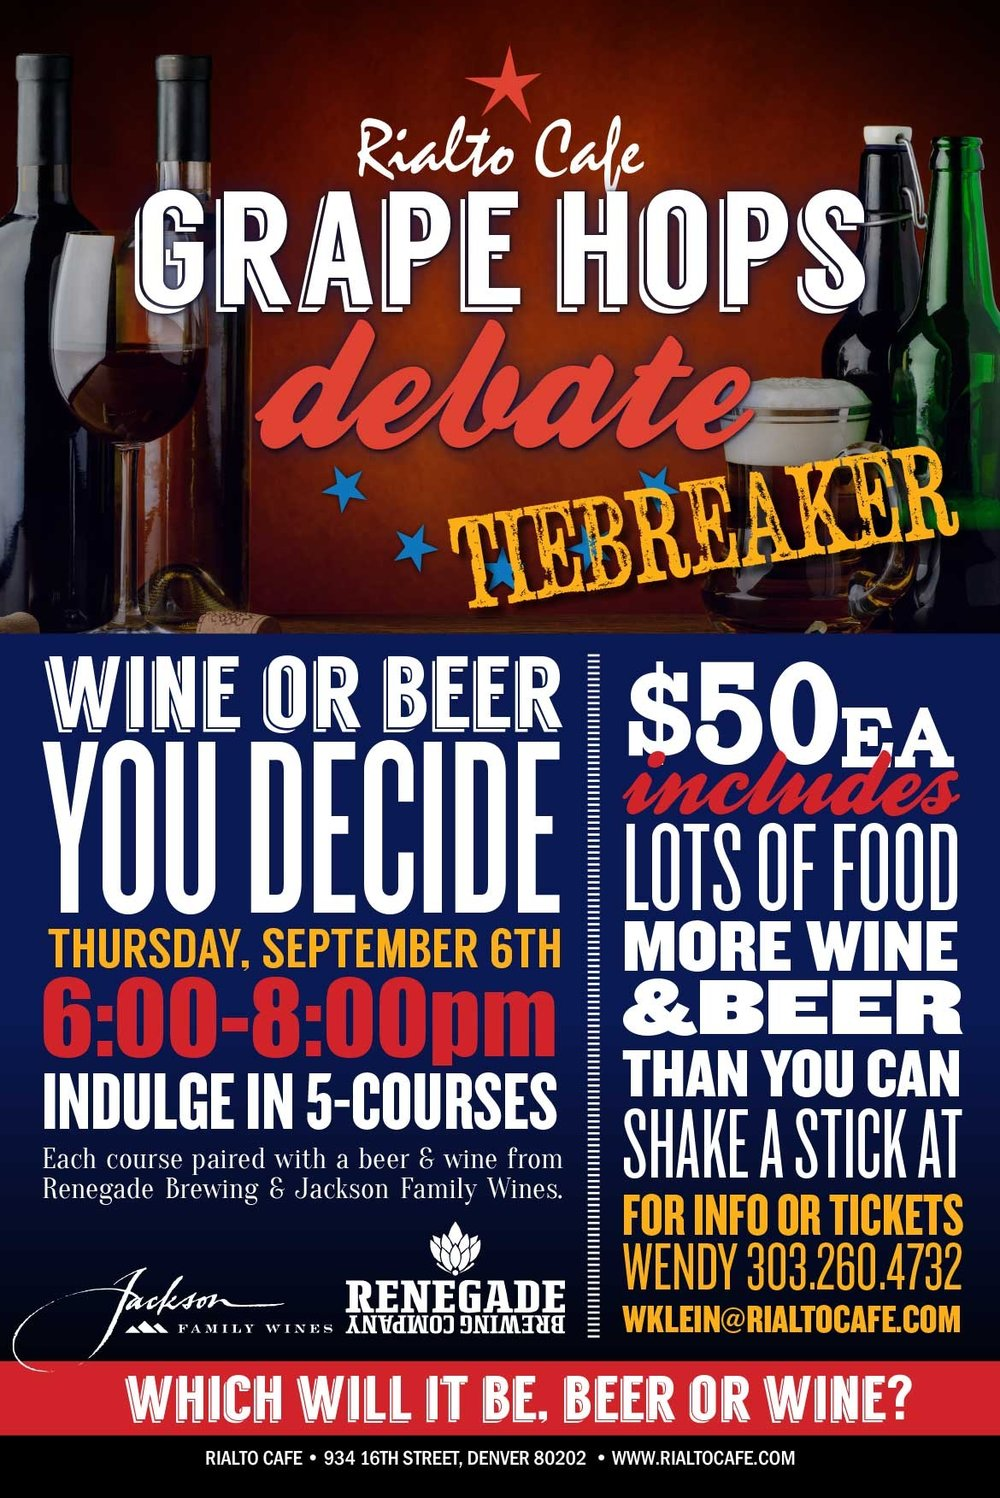 Join us for the 3rd Grape Hops Debate: Tiebreaker - The great debate is back - which is better, beer or wine? Welcome to our 3rd year of the Grape Hops Debate: The Tiebreaker - where you decide which reigns supreme.Indulge in a 5-course dinner by our talented chefs at Rialto Cafe who have masterfully paired each course with wine AND beer. This means a whole lotta food and more wine and beer than you can shake a stick at - all for $50/person (Price does not include tax or gratuity.)Meet our returning contenders: Jackson Family Wines and Renegade Brewing Company. Who will win this year?! Purchase tickets soon as this will sell out. More info: 303-260-4732